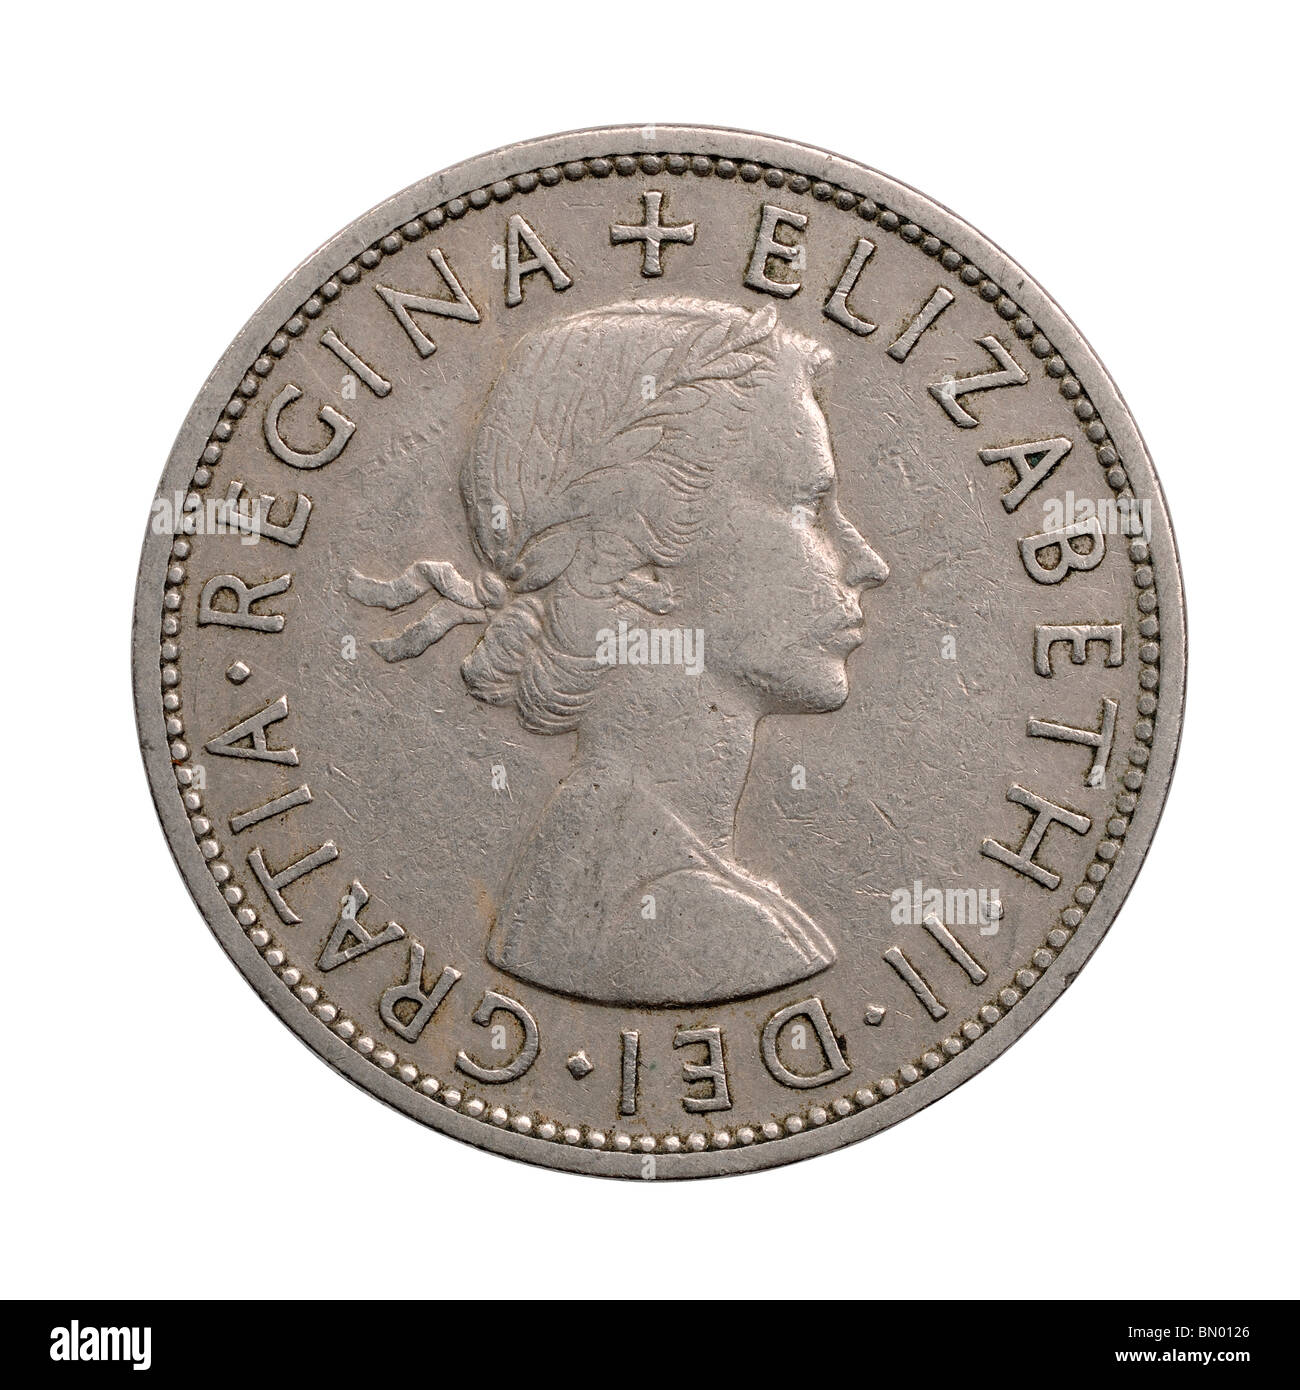 1956 Half Crown coin - Stock Image